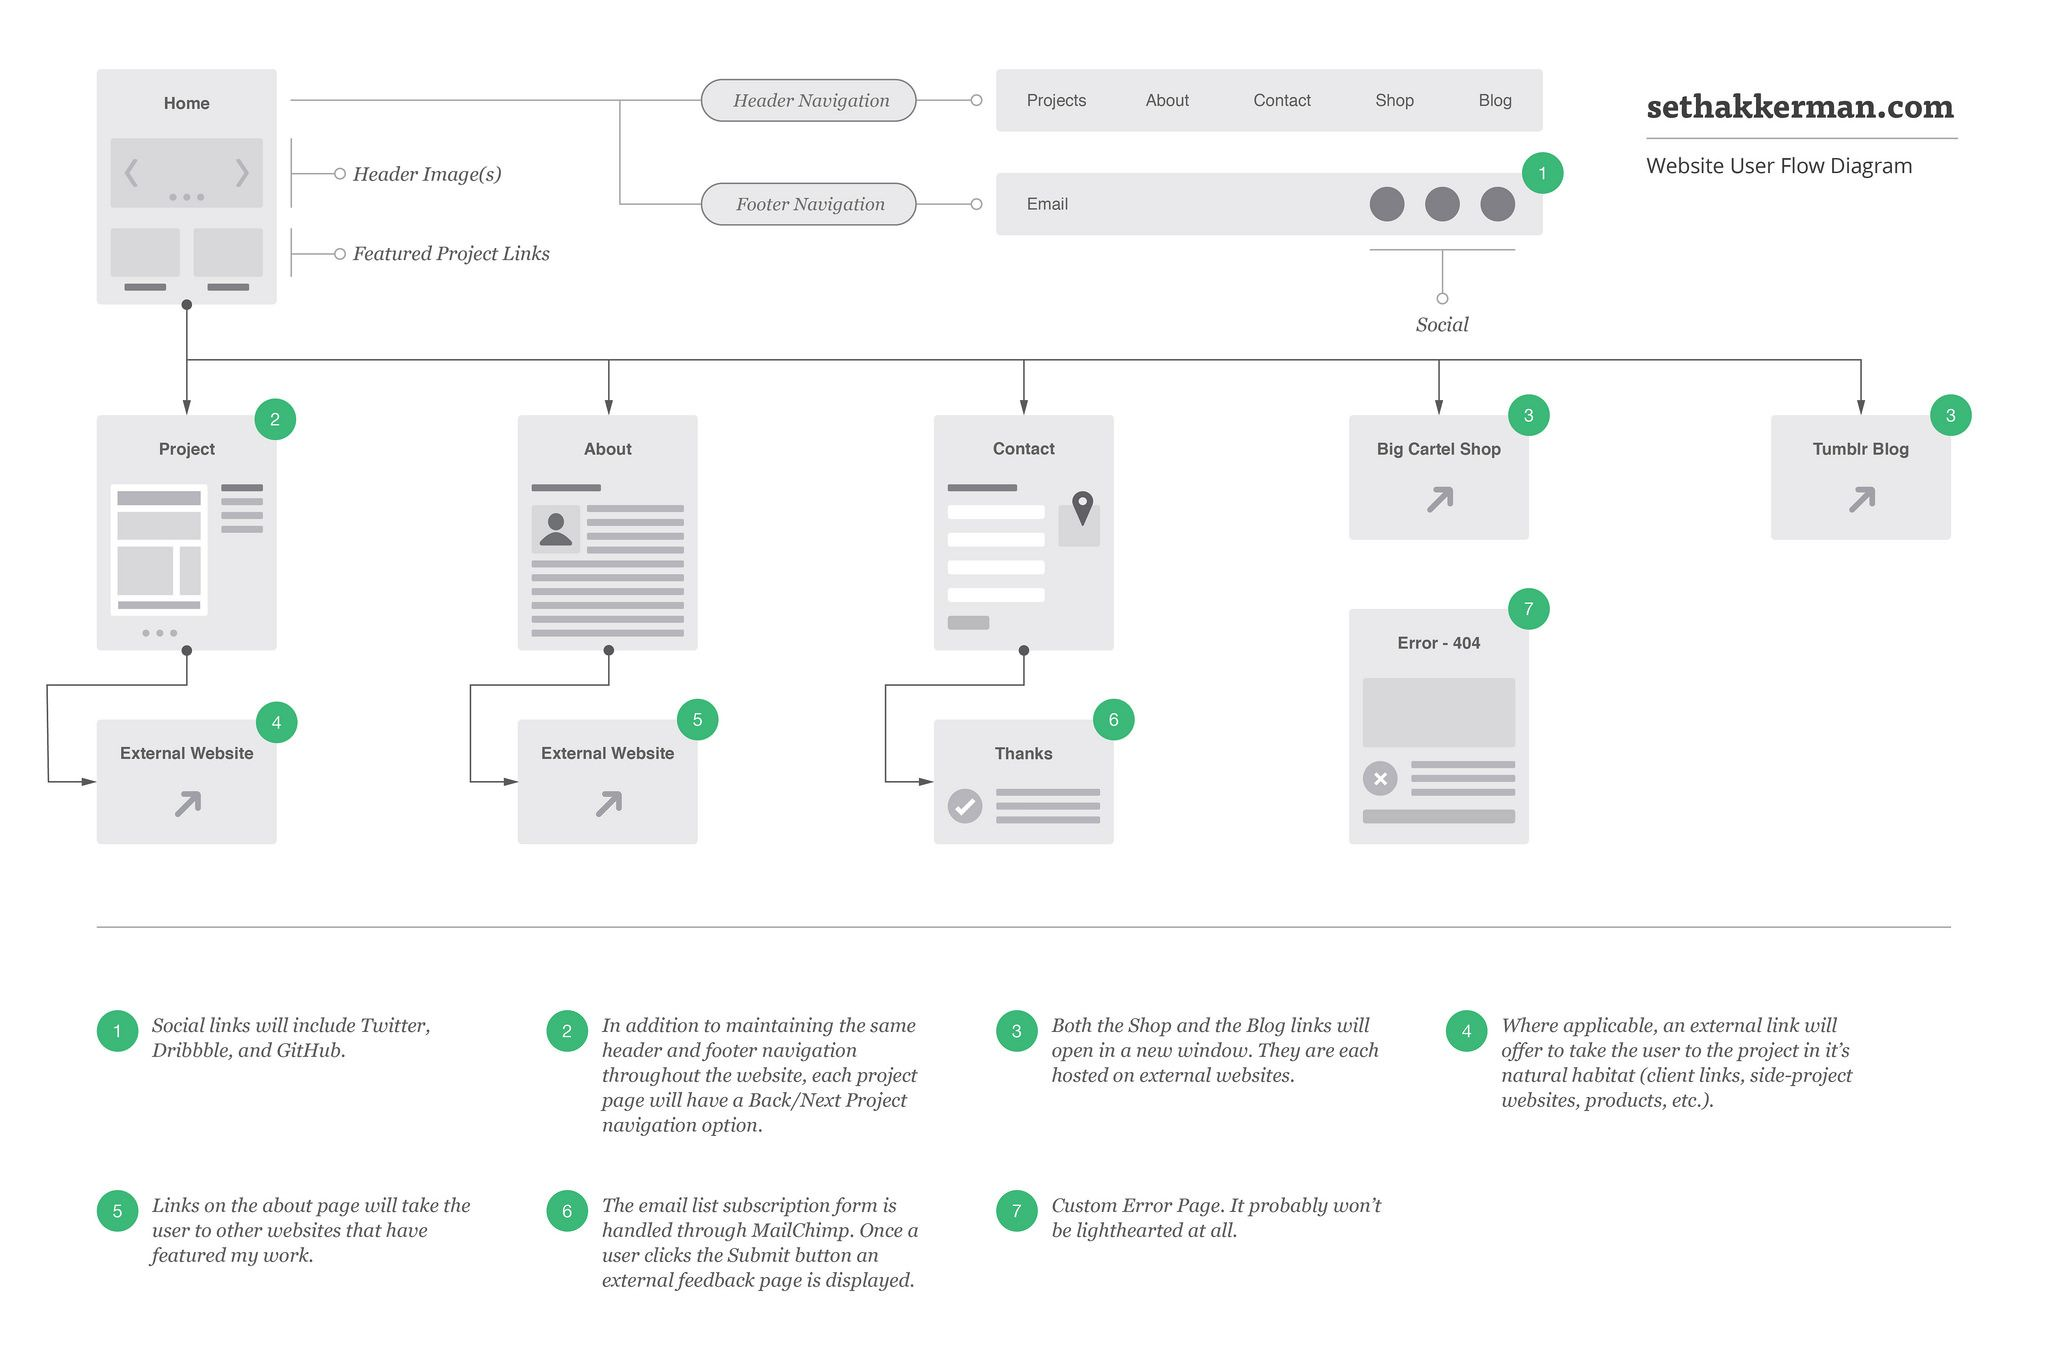 website user flow diagram seth akkerman webdesign web page design flow chart web design flow diagram [ 2048 x 1370 Pixel ]